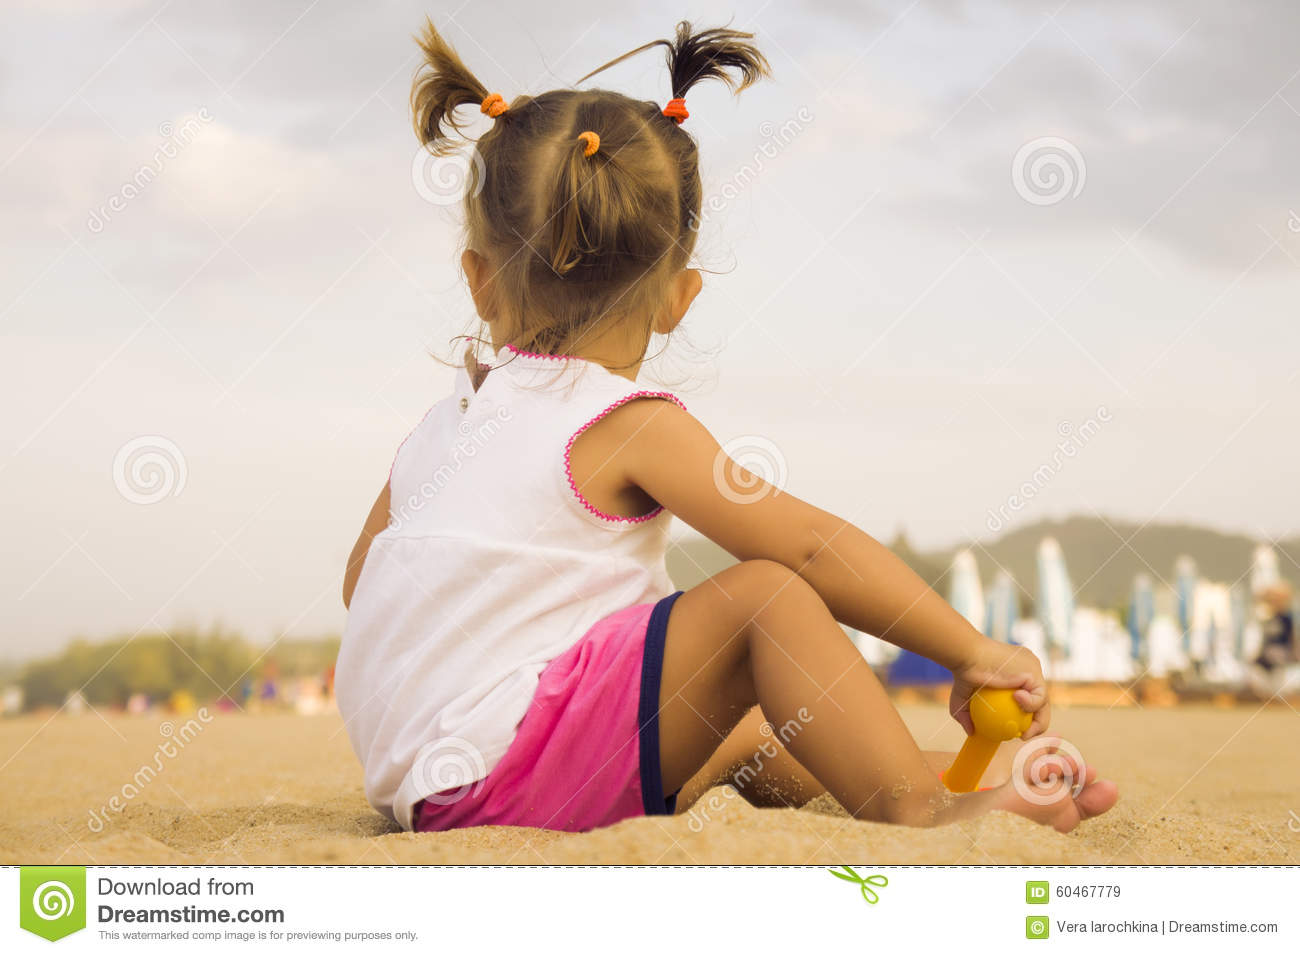 Beautiful baby sitting with his back to the camera and playing with toy rake in the sand on the beach.